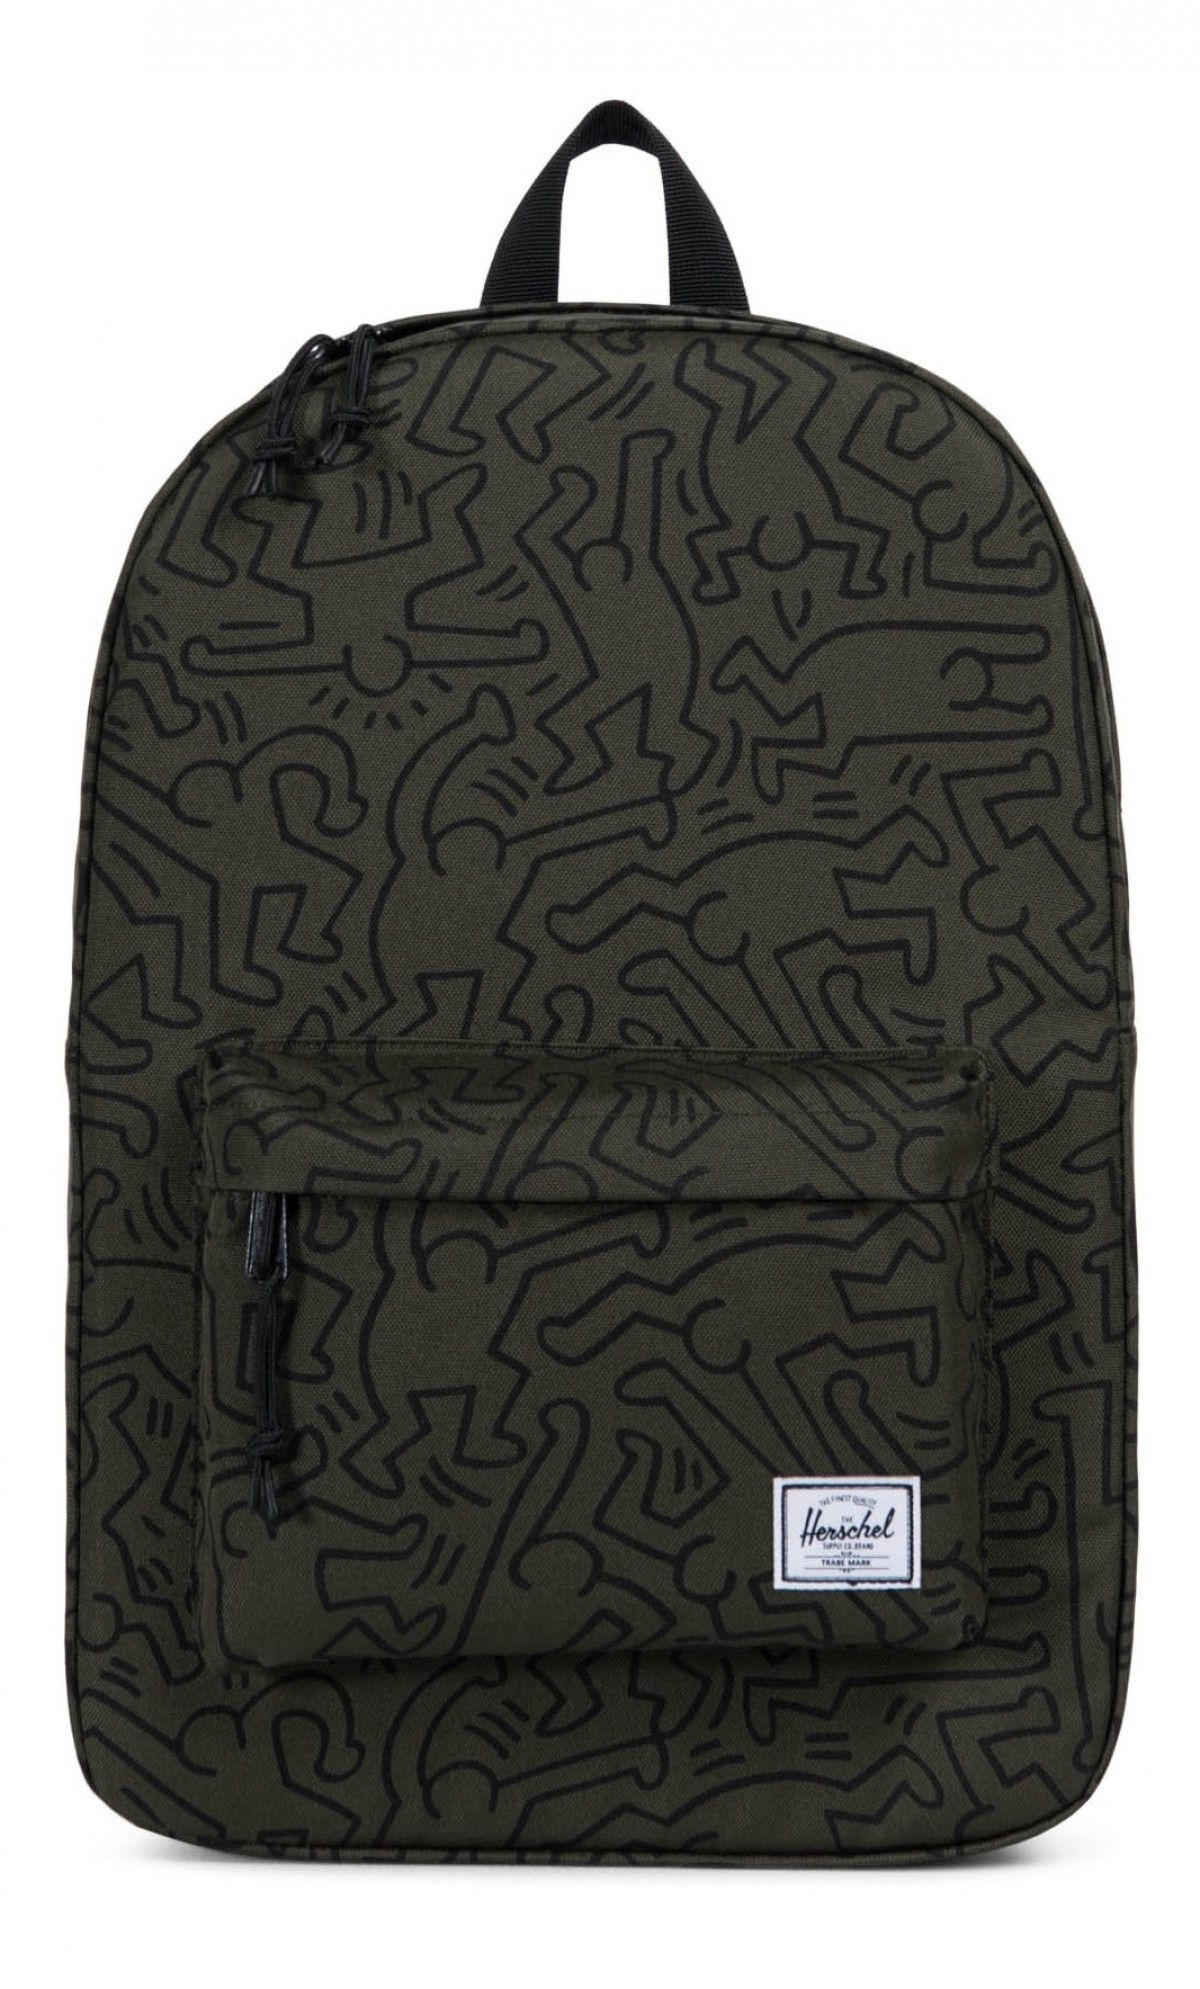 dfb578ef4c1 Herschel Winlaw Backpack 600D Poly Forest Night Keith Haring ...